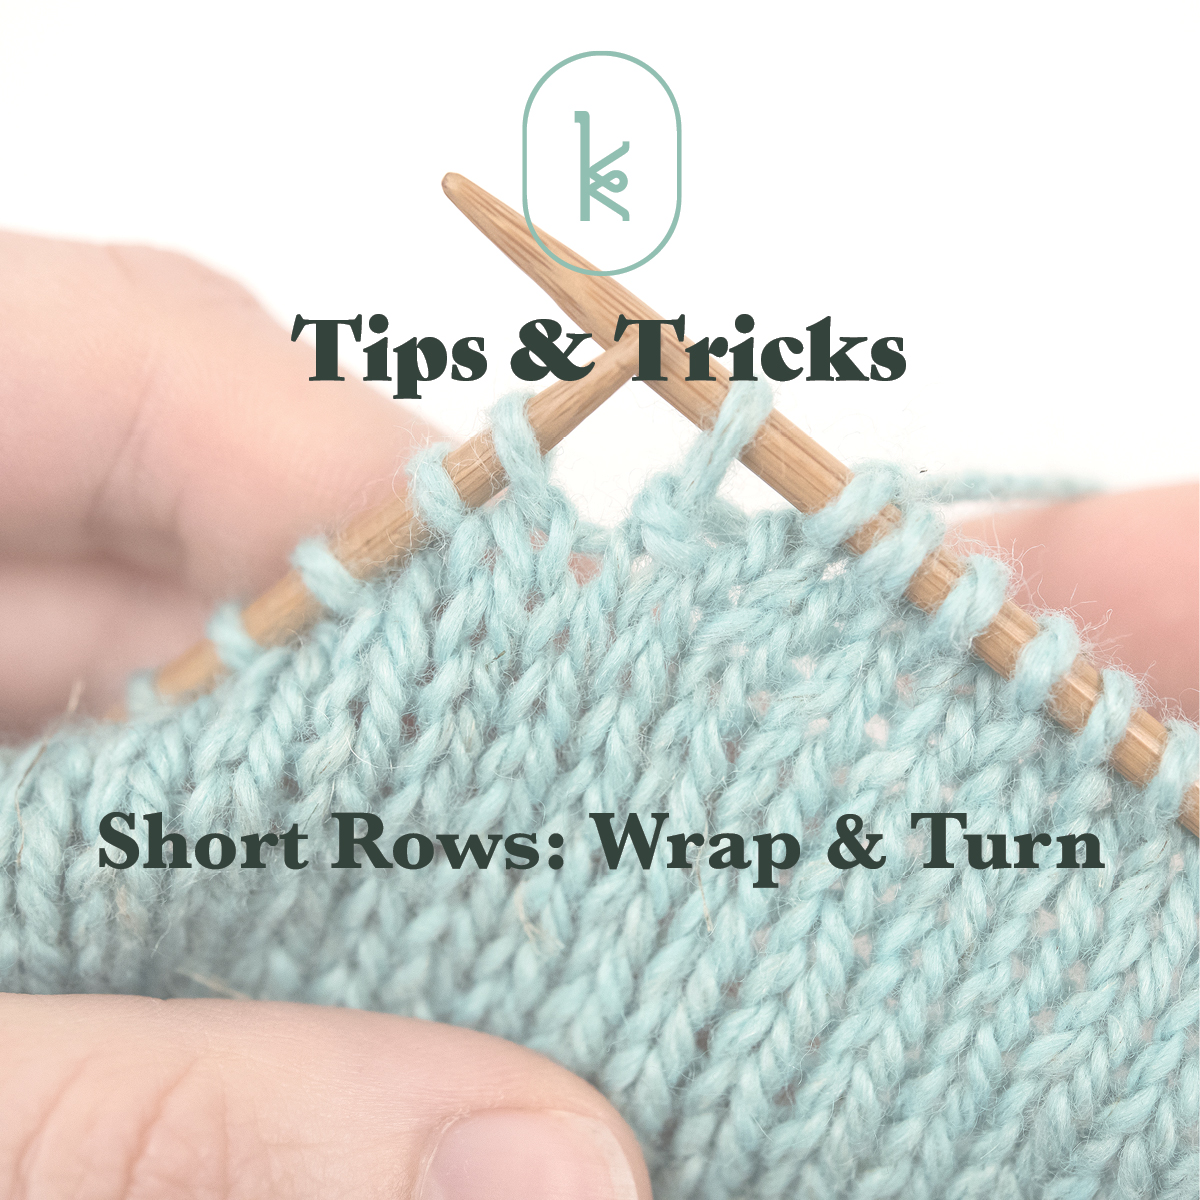 Short Row Shaping Wrap and Turn.jpg